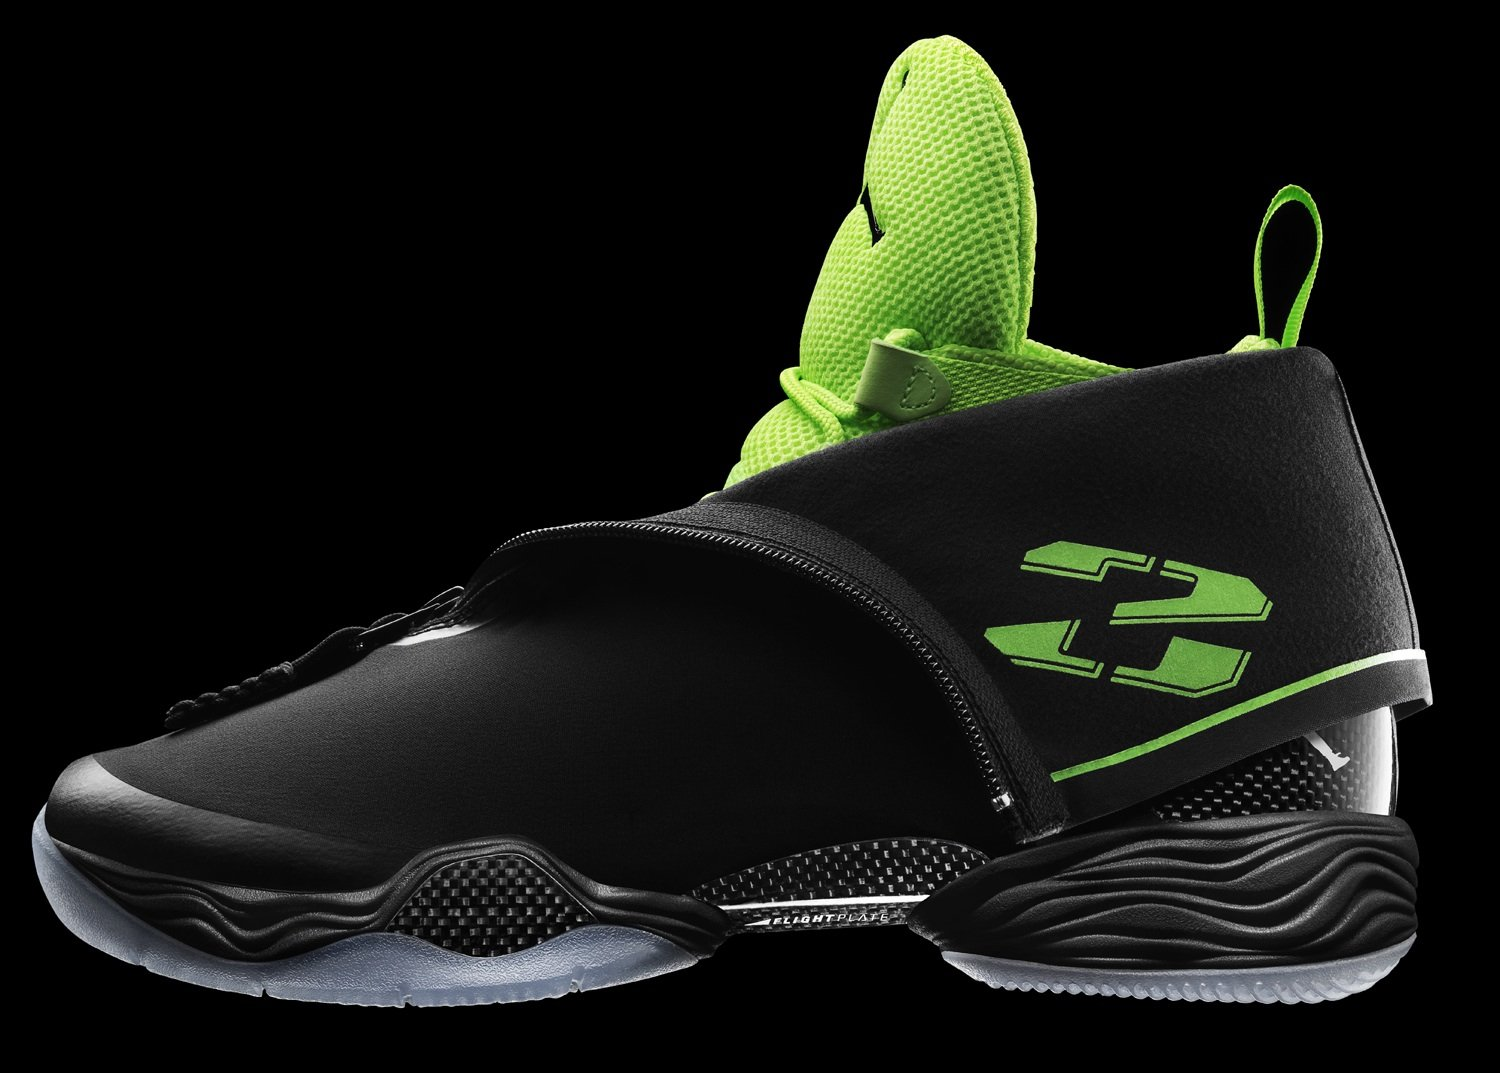 timeless design dcaa4 a8691 Today, Jordan Brand, a division of NIKE, Inc., unveiled the AIR JORDAN XX8,  the 28th shoe in the AIR JORDAN franchise. It will be available in Houston  only ...